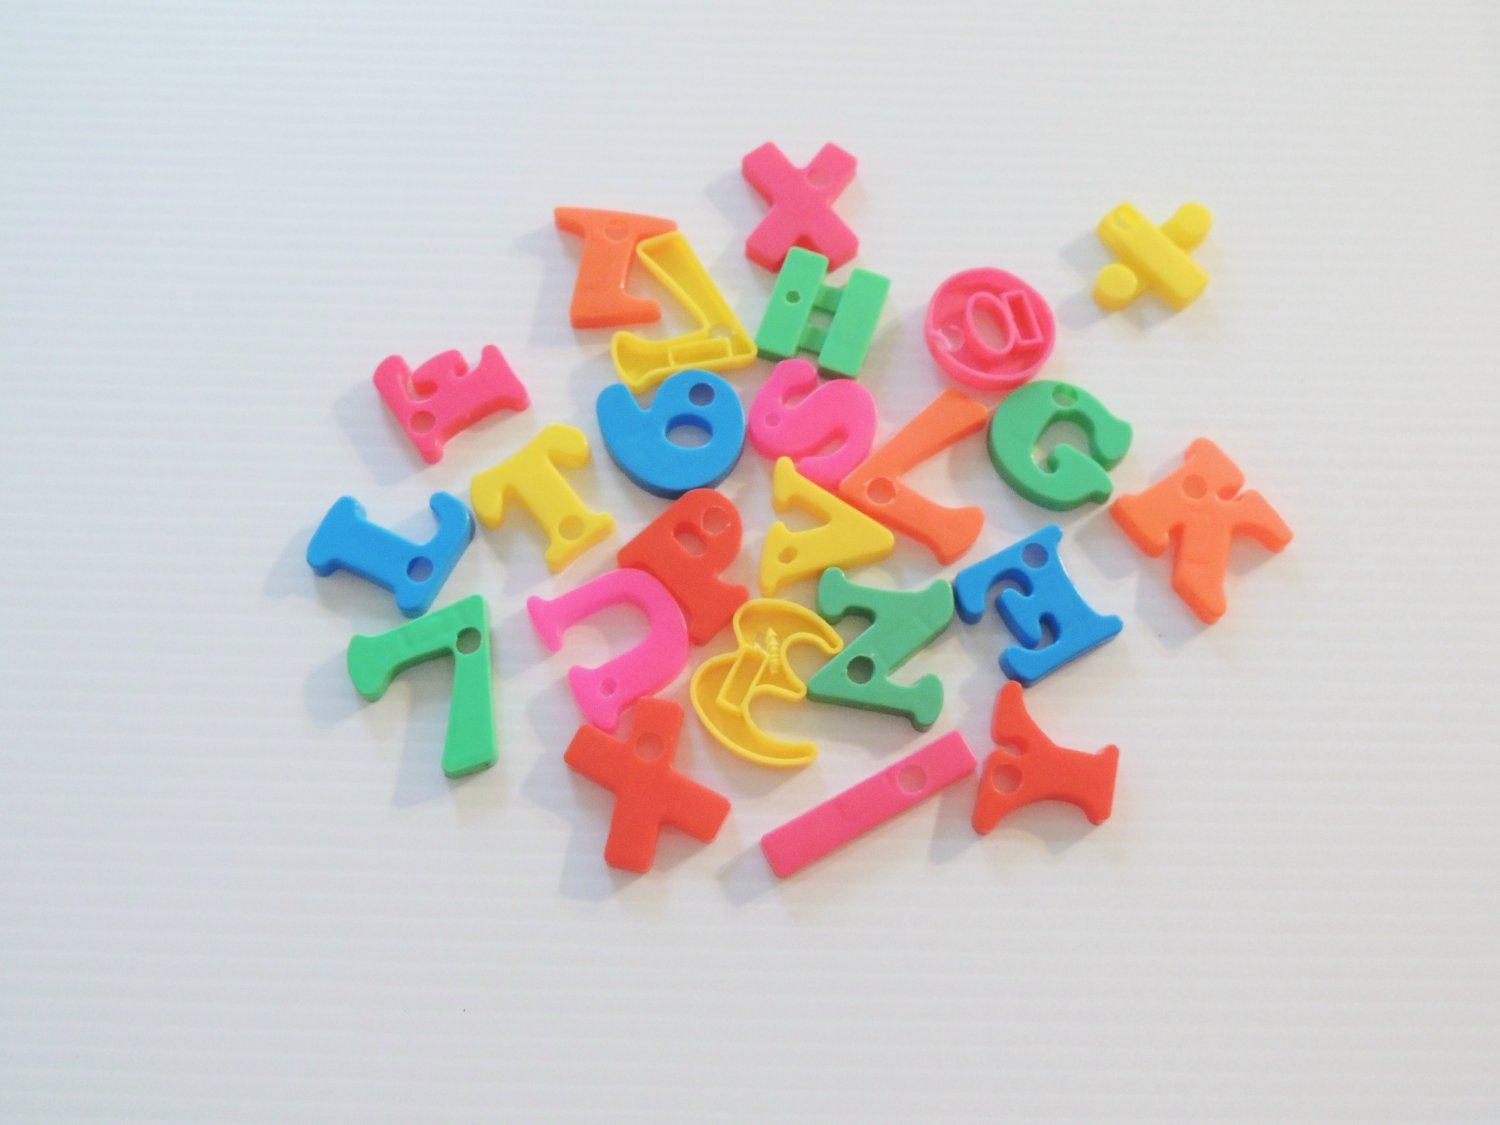 Plastic Numbers & Letters bird toy parts parrot craft